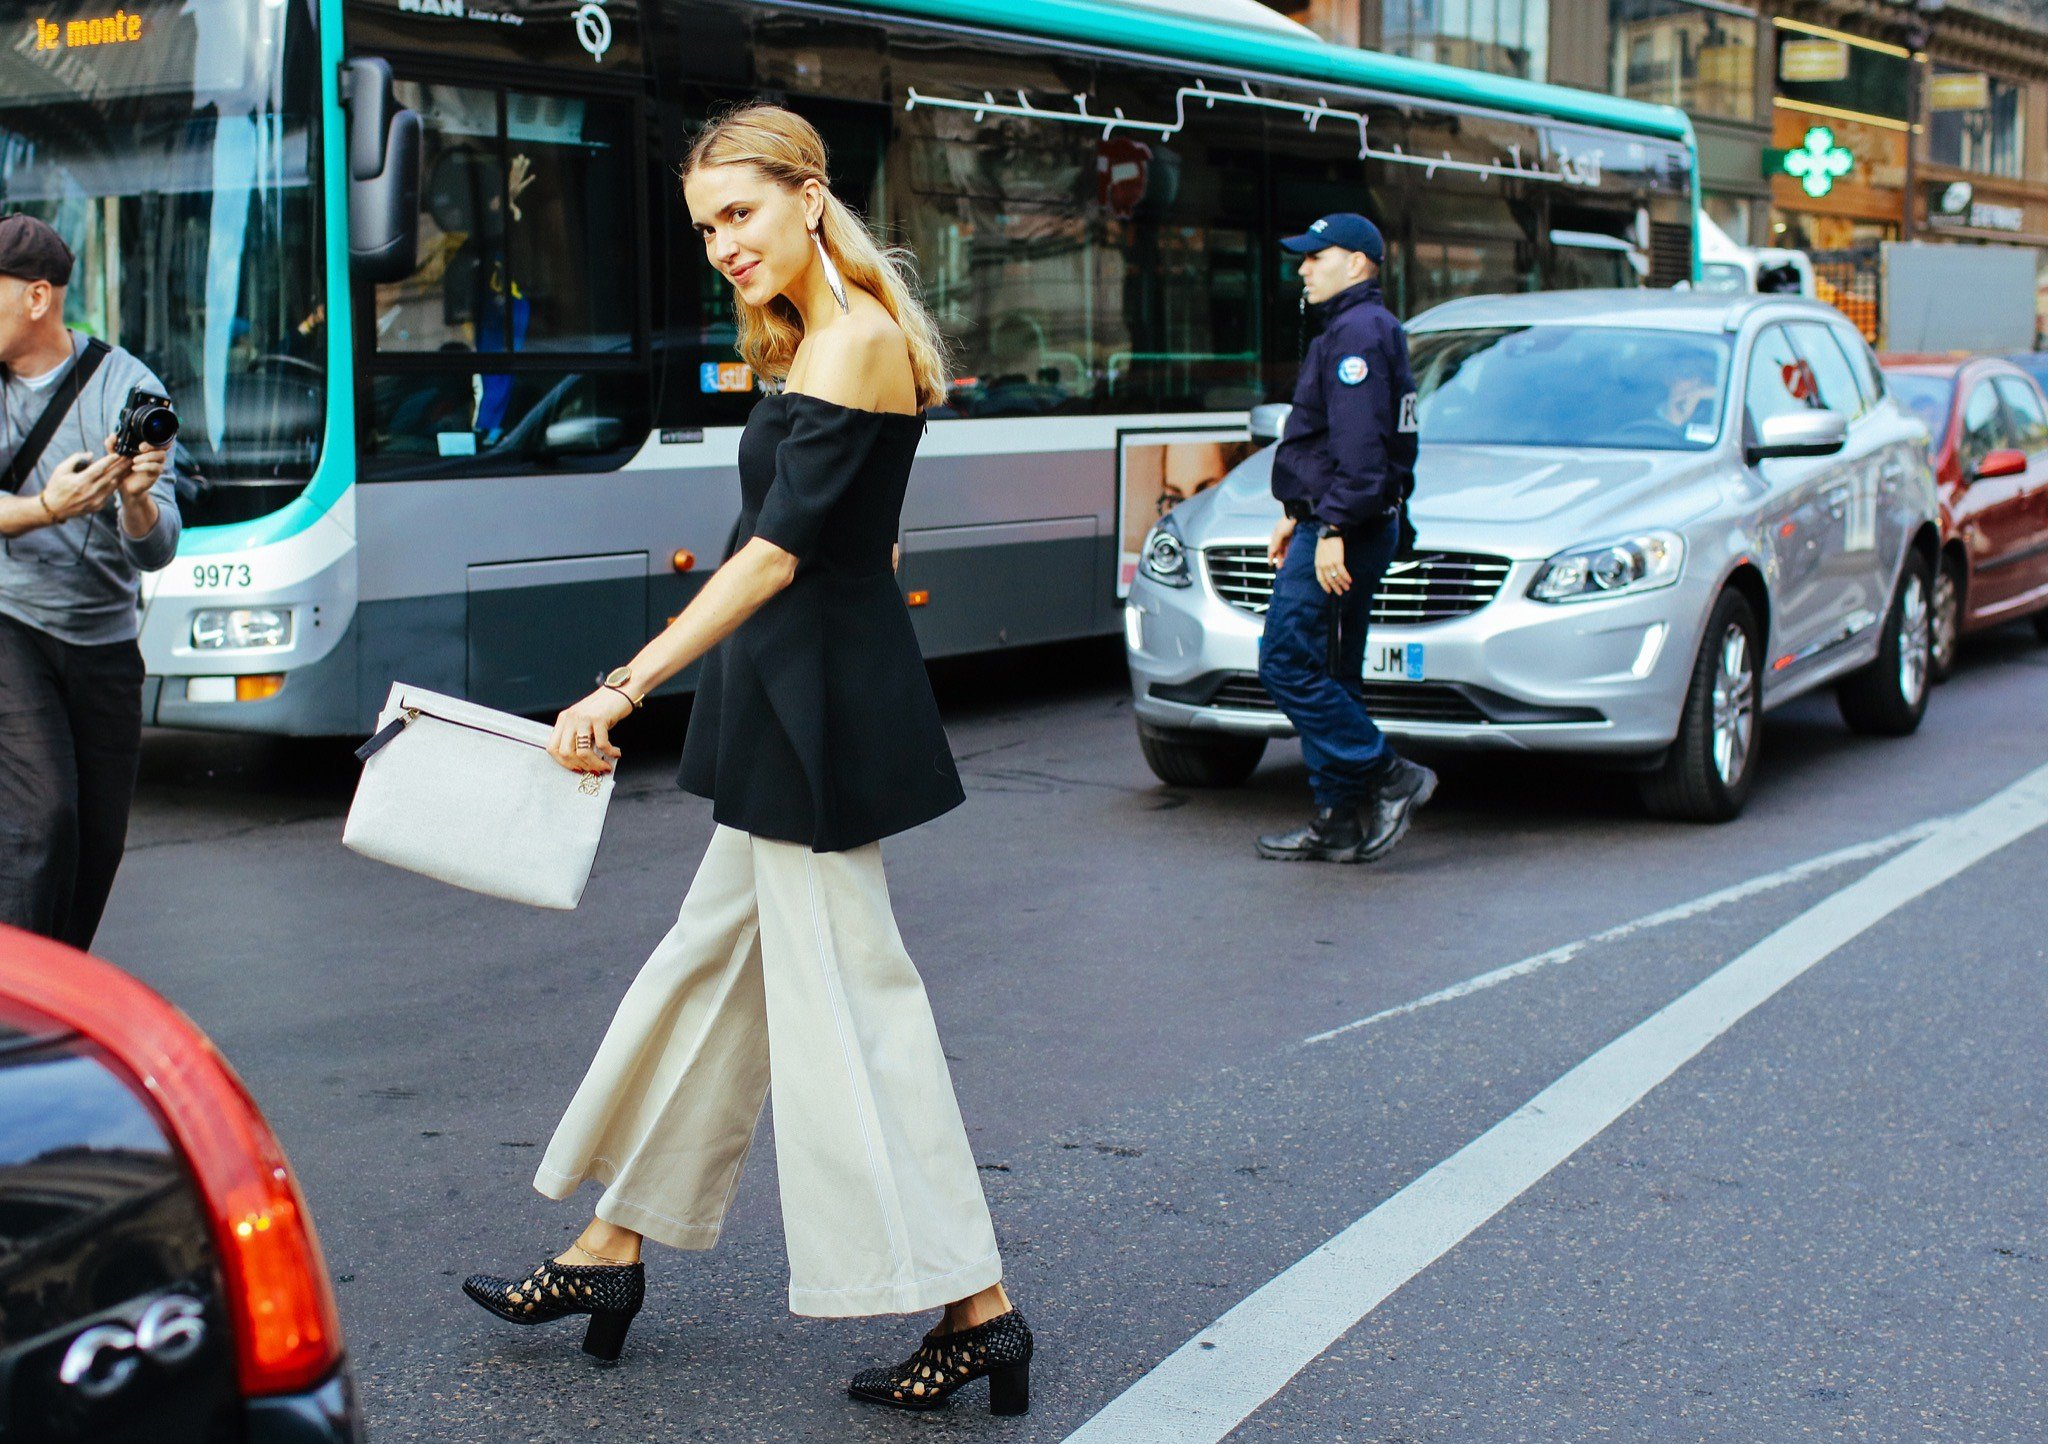 2.-Best-ever-Paris-Fashion-Week-street-style-outfits-5